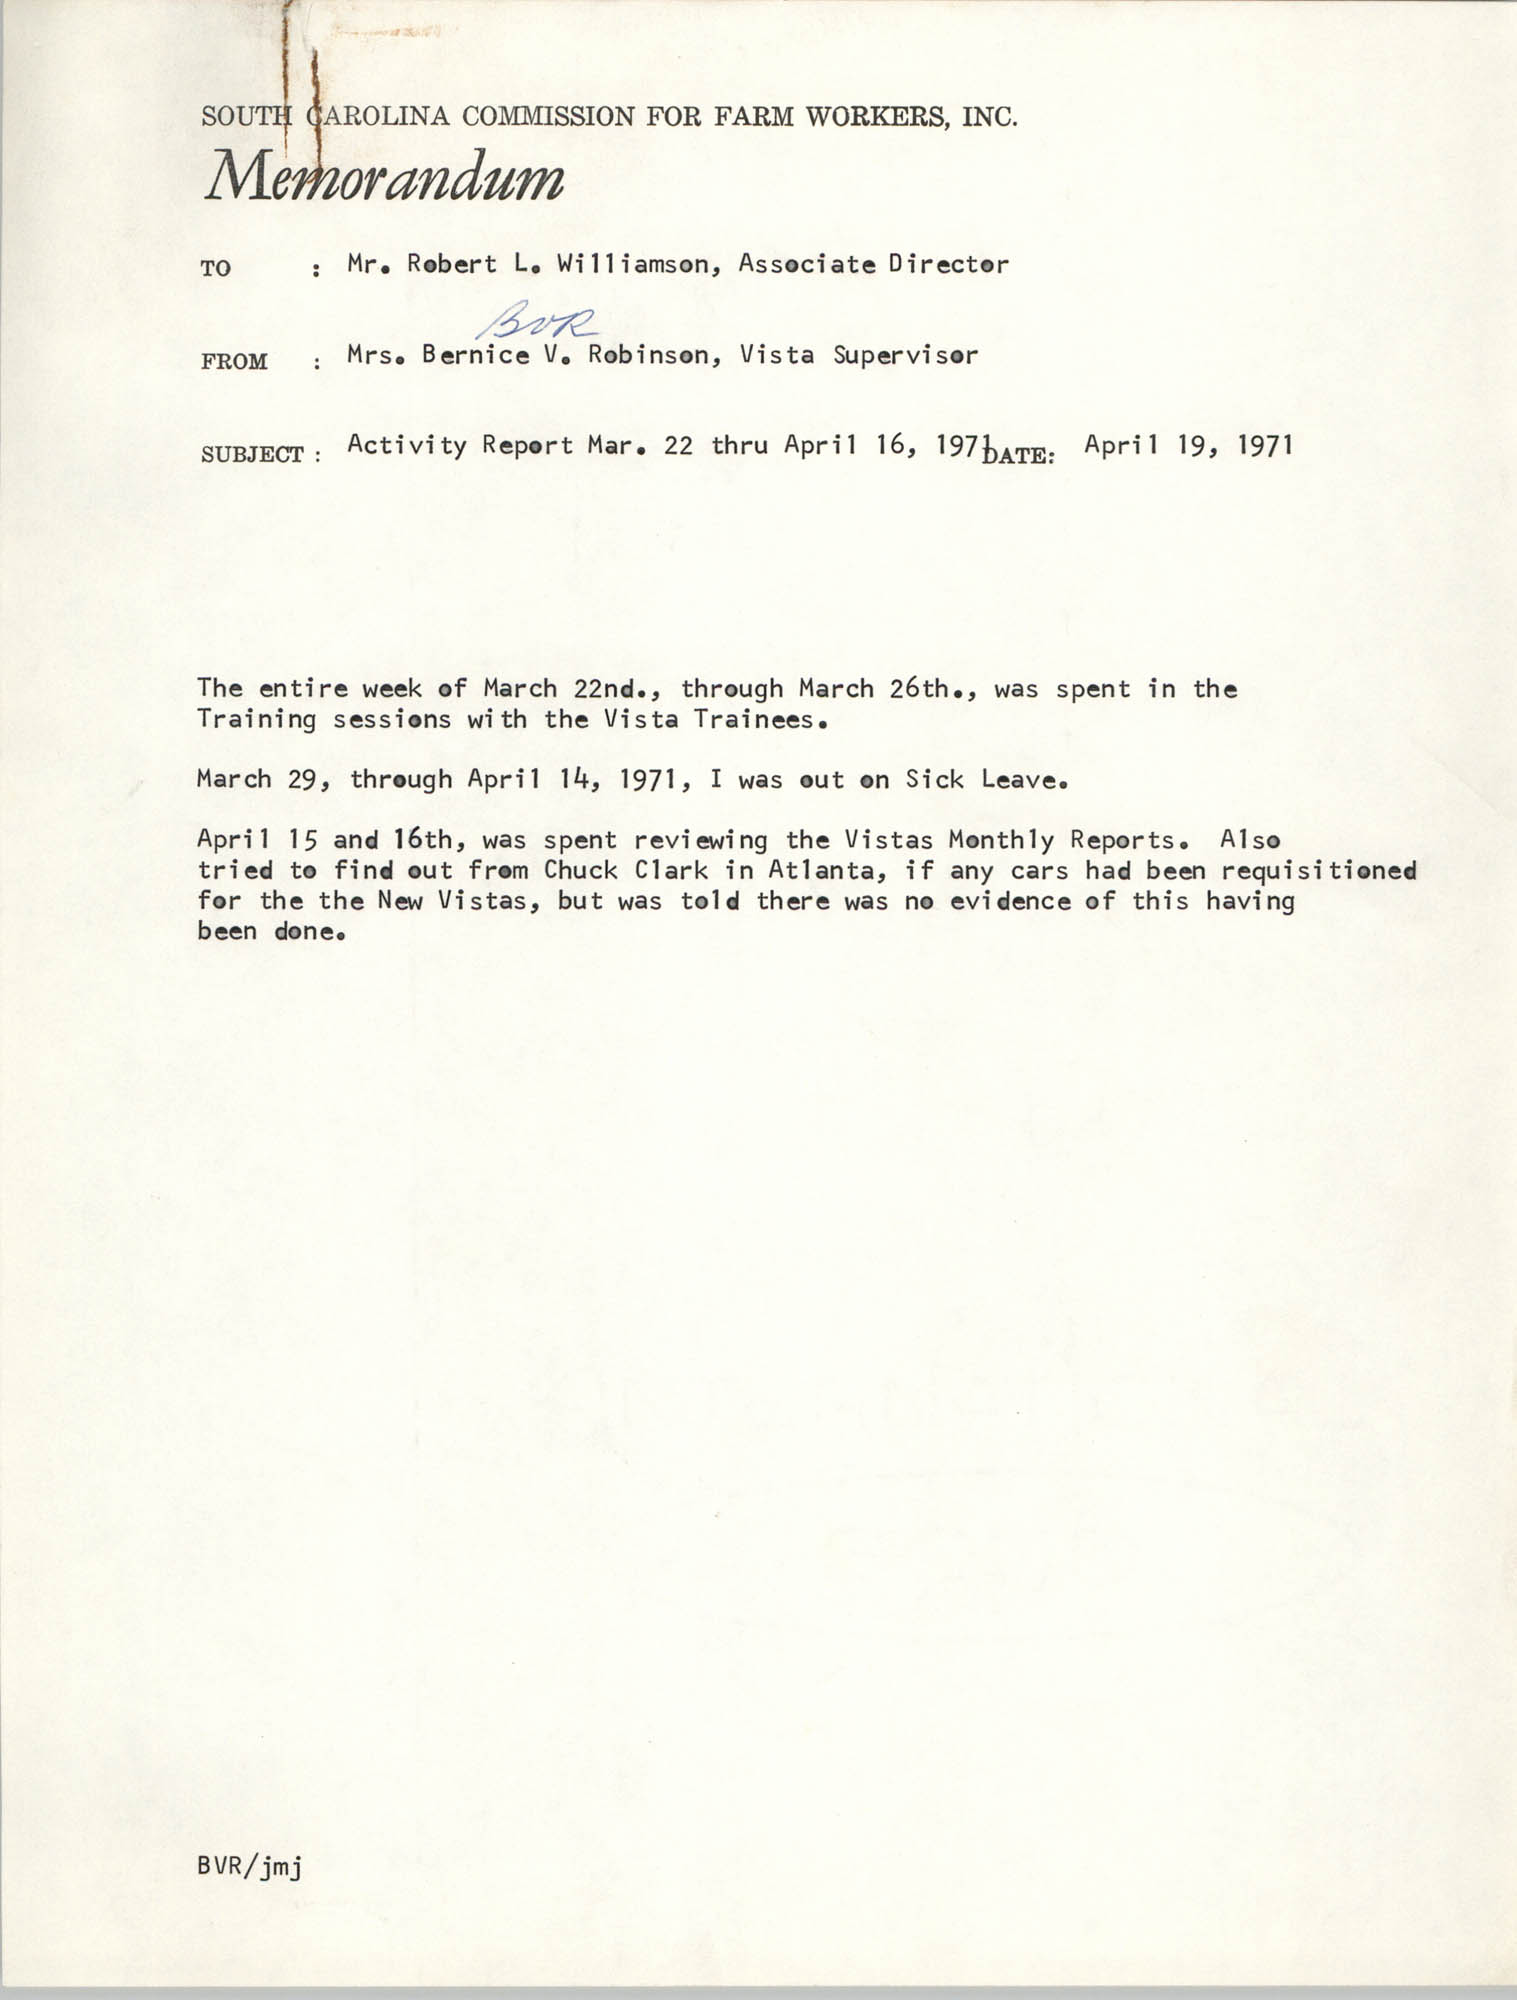 Memorandum from Bernice V. Robinson to Robert Williamson, April 19, 1971